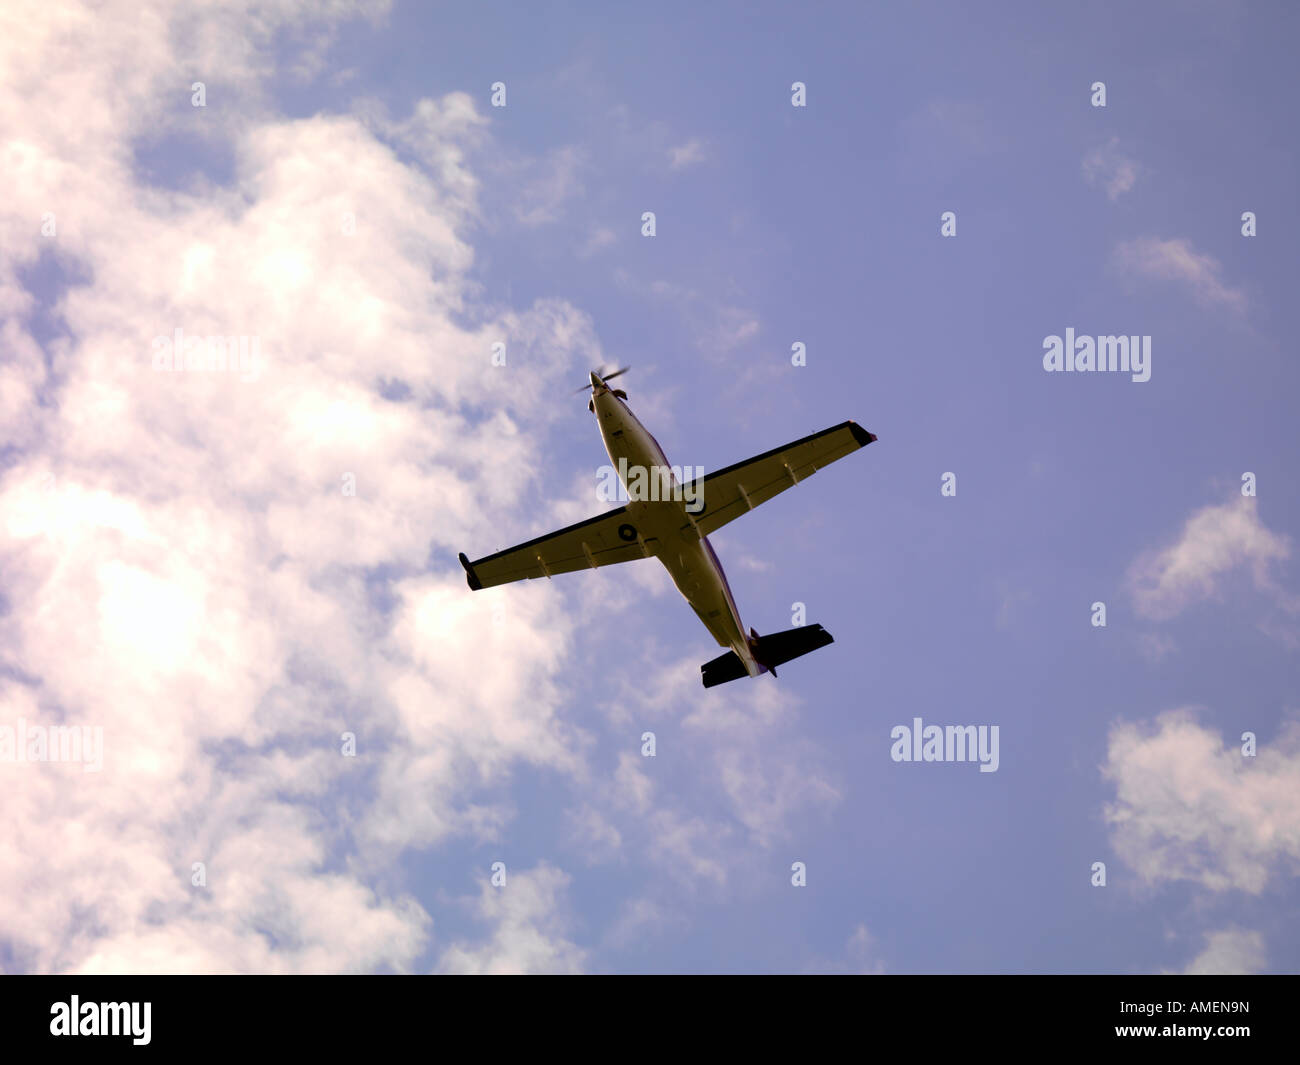 PC 12 airborne from Ted Stevens Anchorage International Airport - Stock Image